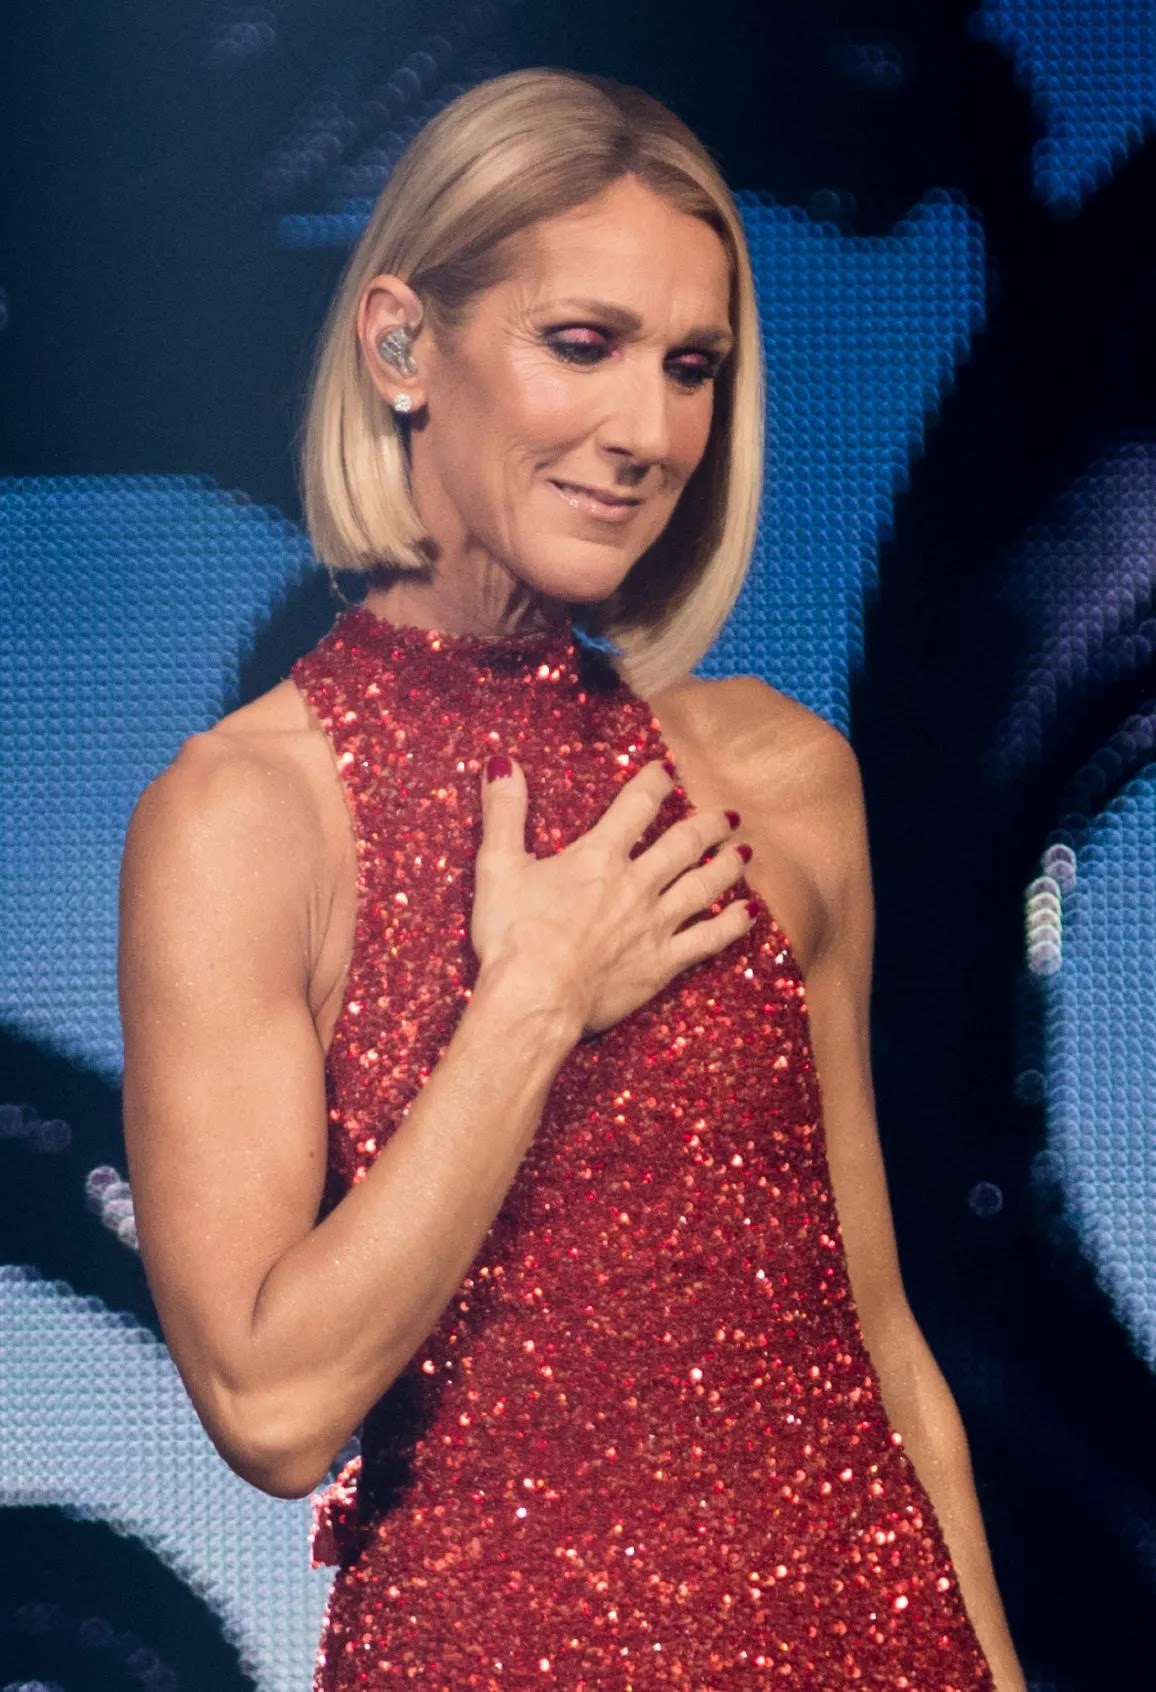 EndSars: My heart melts for Nigerians – Celine Dion